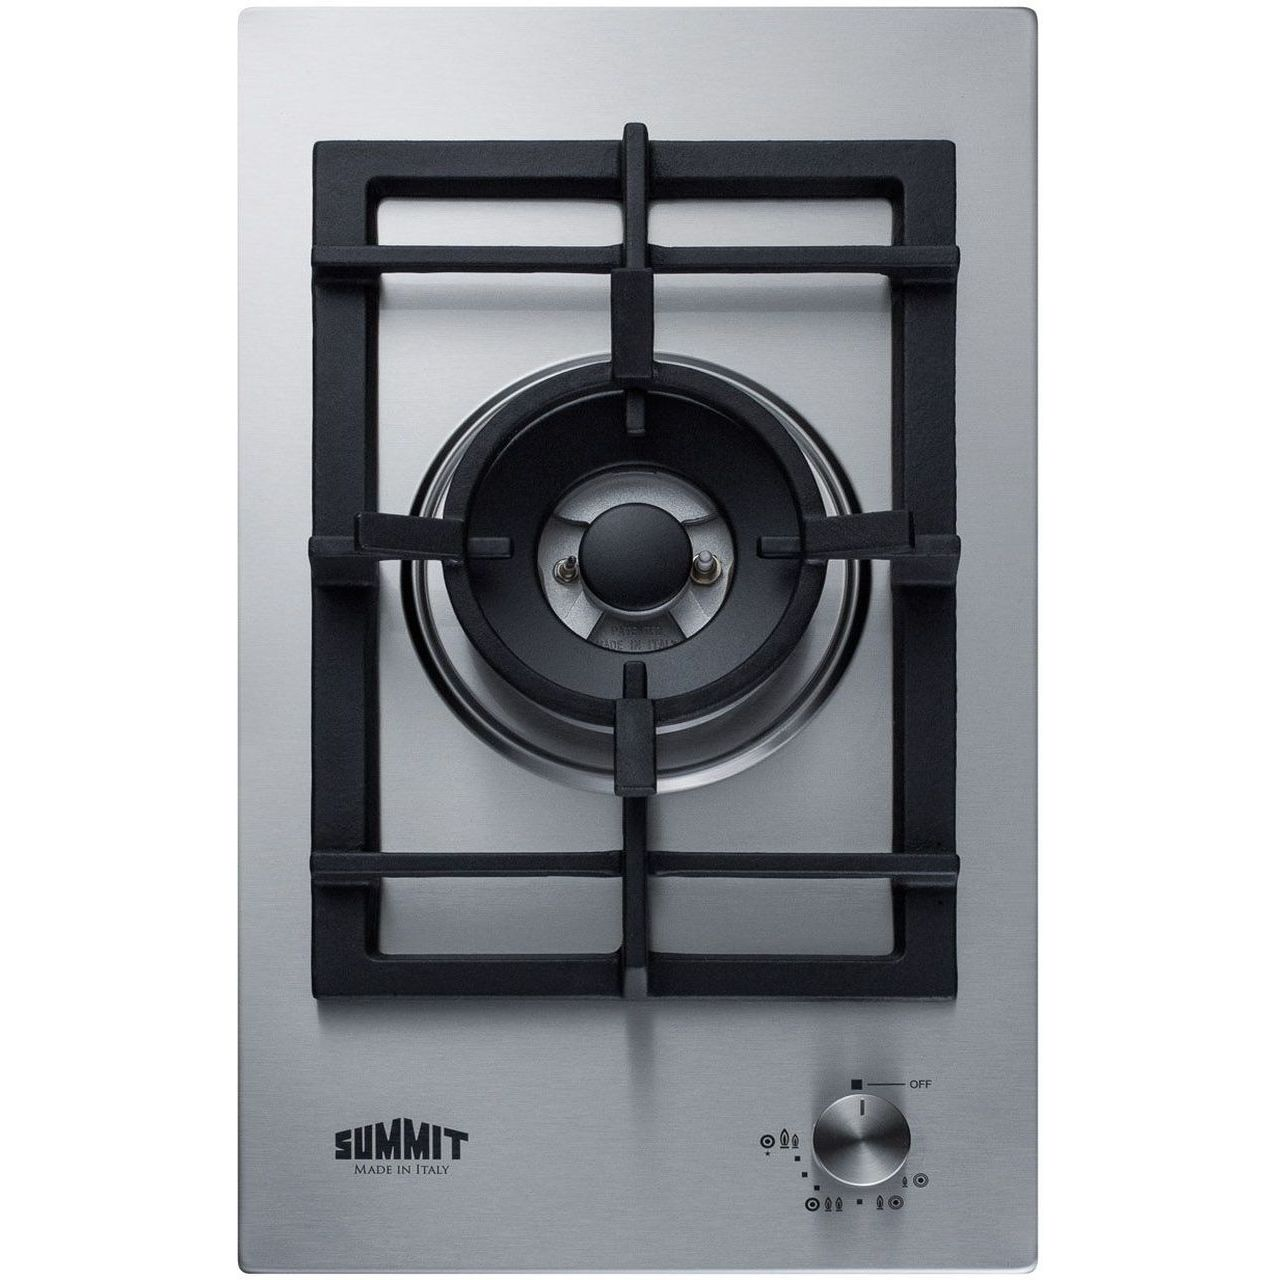 Summit GCJ1SS 12'' 1-Burner Gas Cooktop In Stainless Steel